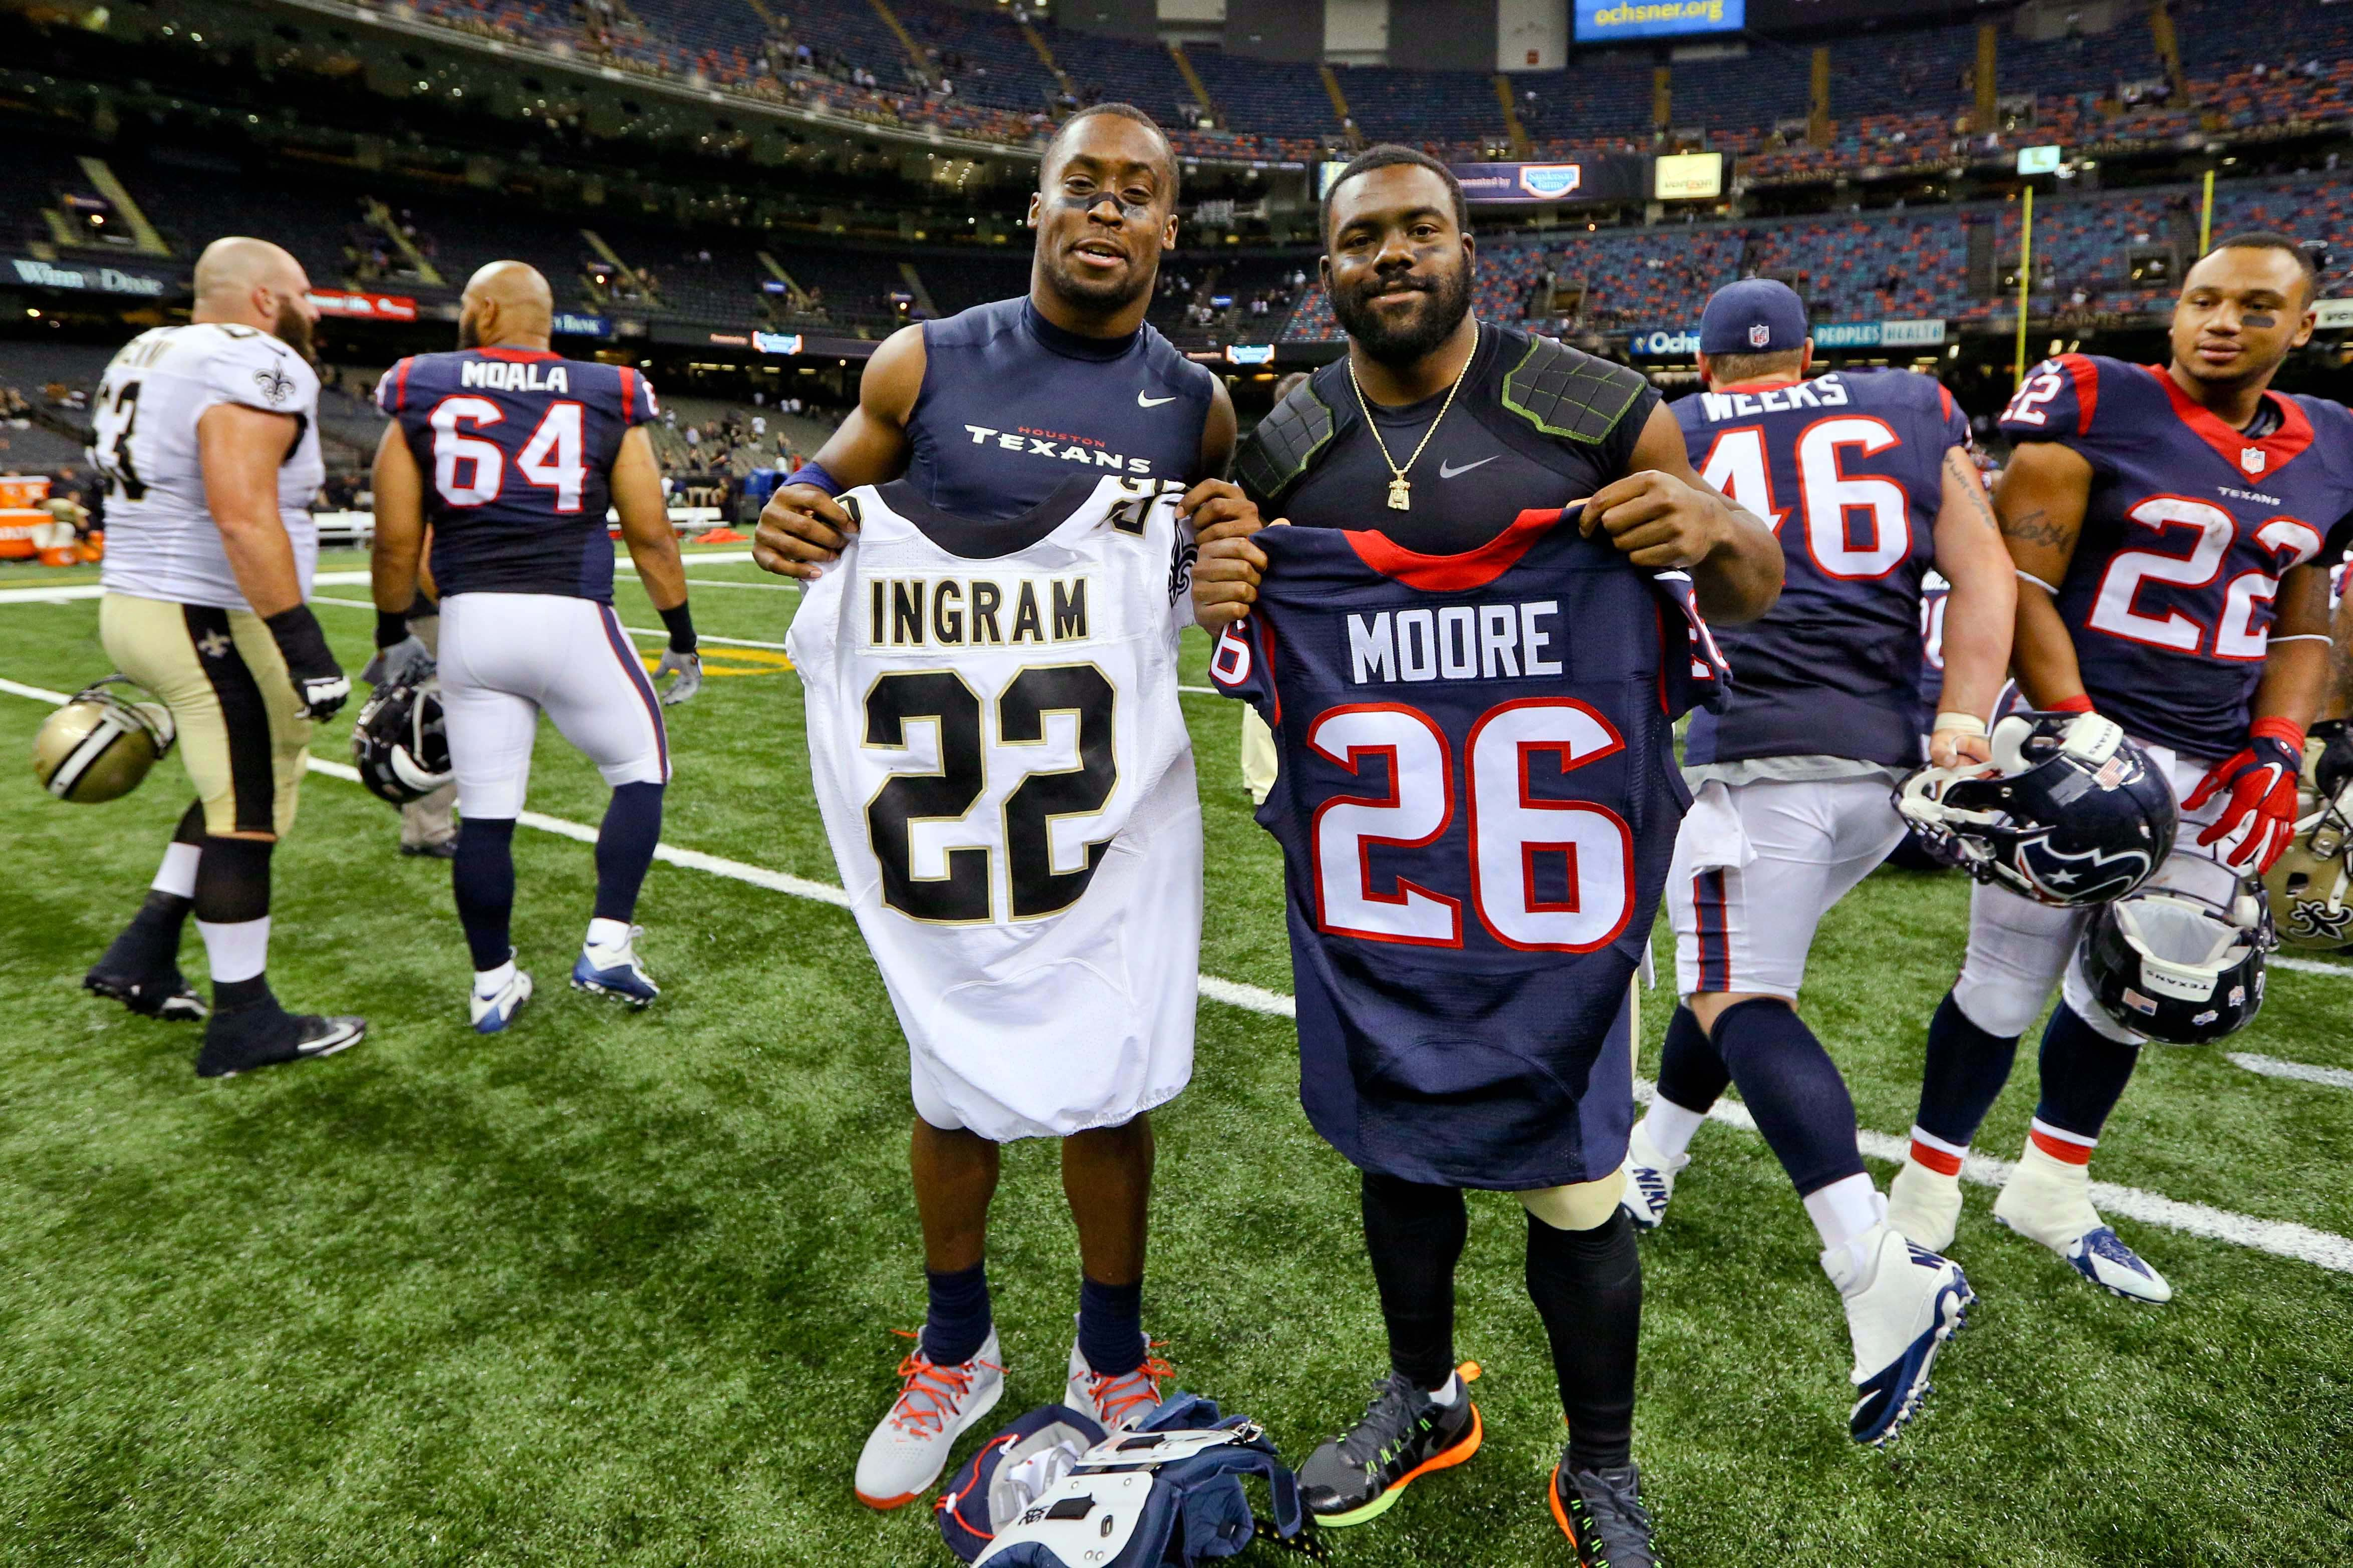 Odds are that Rahim Moore won't even have a jersey to exchange on Sunday.